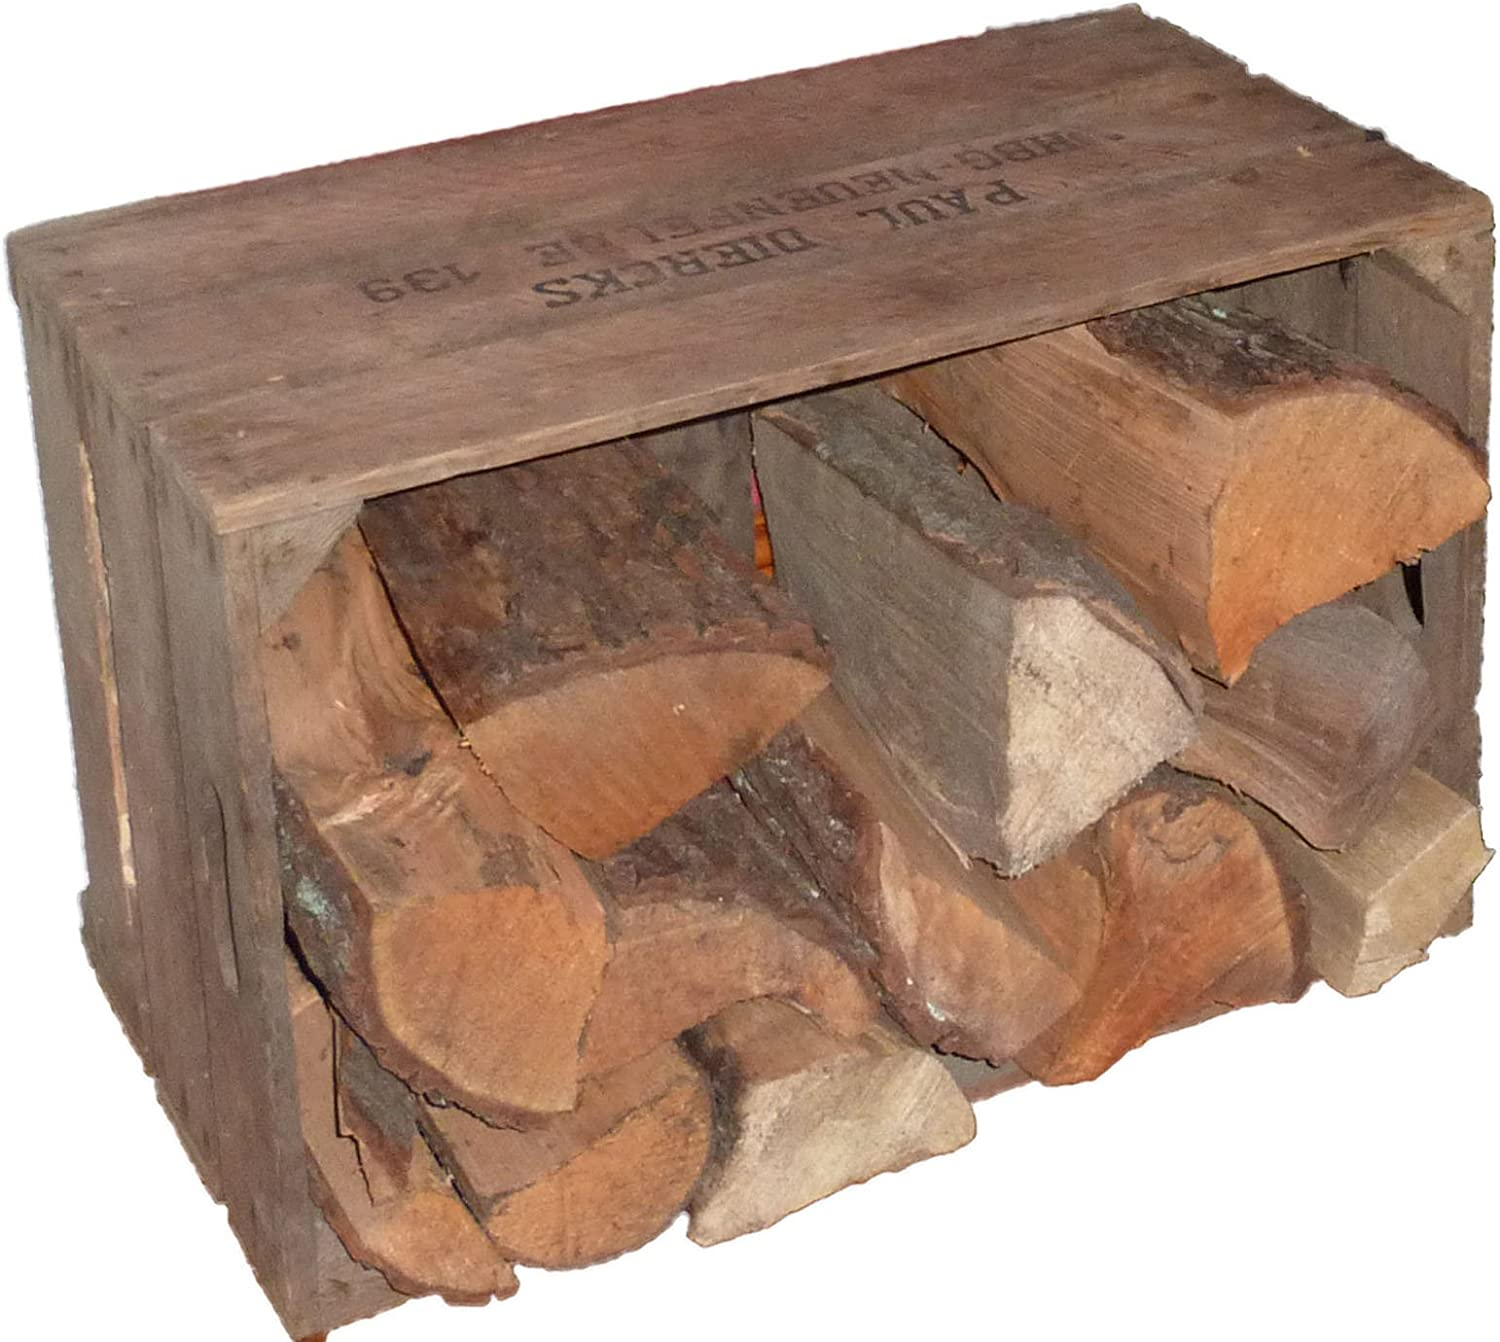 Robust Firewood Storage Box Made With Wood From Altes Land In Germany Amazon Co Uk Kitchen Home